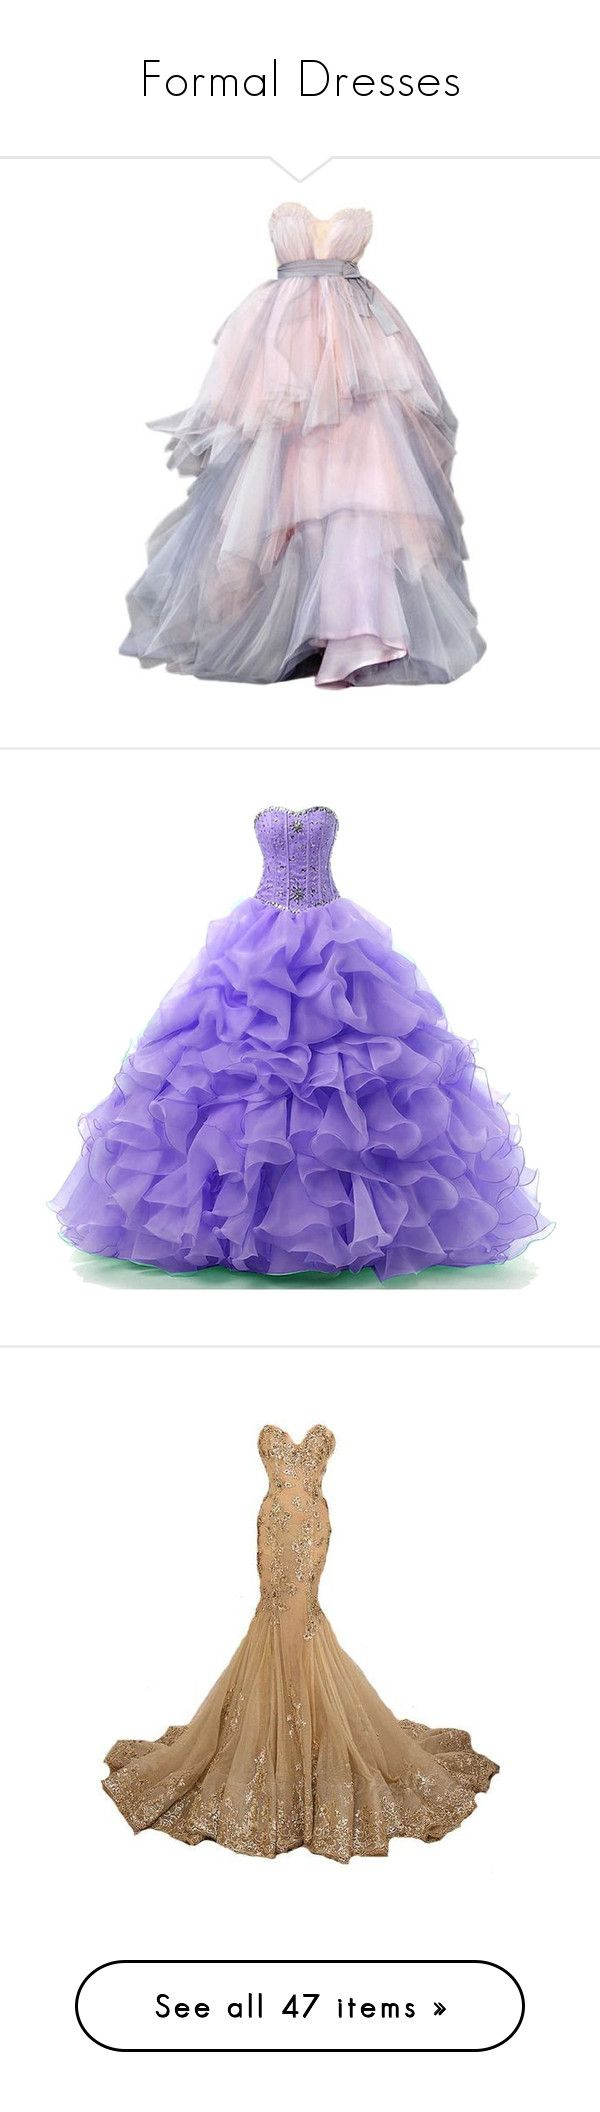 """""""Formal Dresses"""" by lady-madhatter ❤ liked on Polyvore featuring dresses, gowns, long purple dress, long evening gowns, purple homecoming dresses, purple evening gowns, long homecoming dresses, long dresses, long prom dresses and prom ball gowns"""